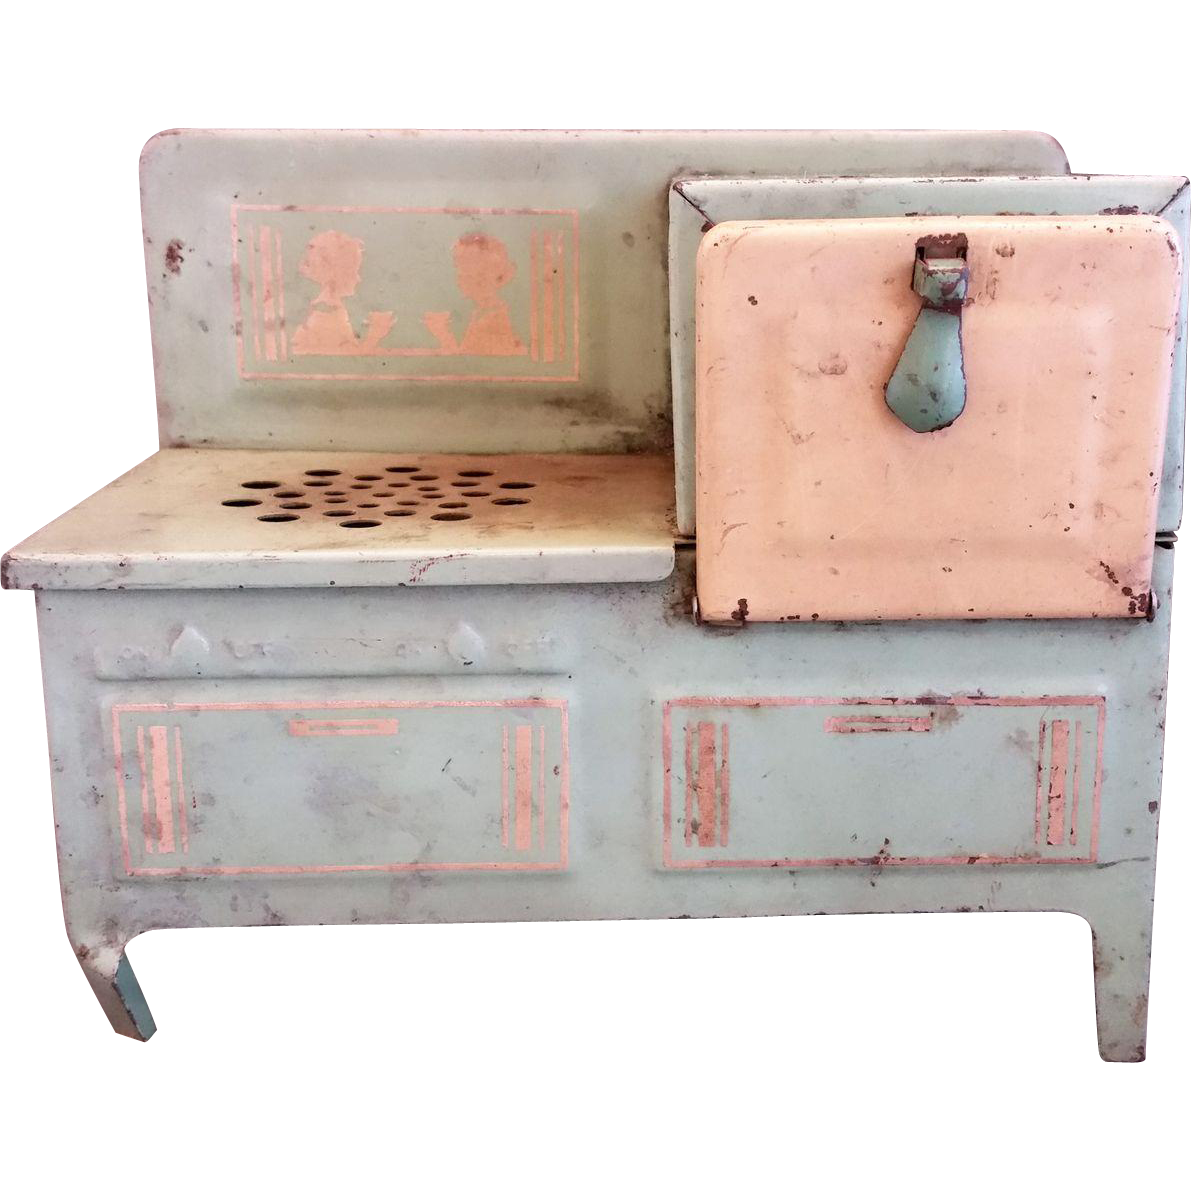 1930s Jadeite Green Metal Toy Doll Stove Electric Range